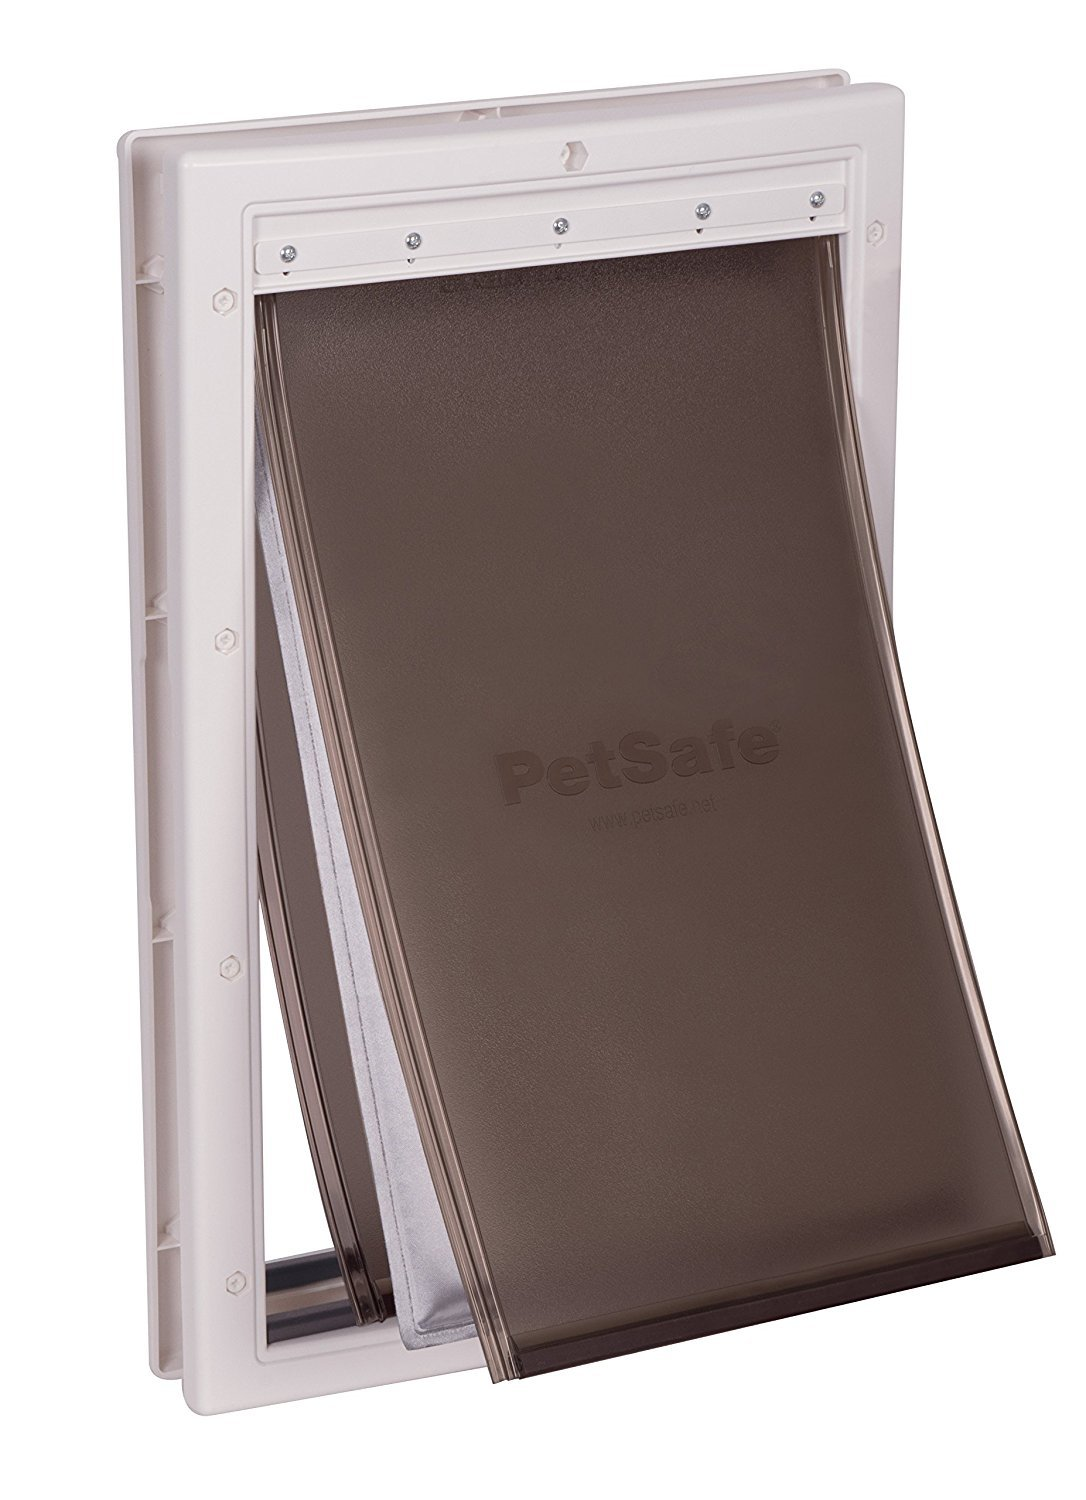 PetSafe Extreme Weather Pet Door Large, Easy Install, Insulating, Weather Proof, Energy Efficient, 3 Flap System by PetSafe